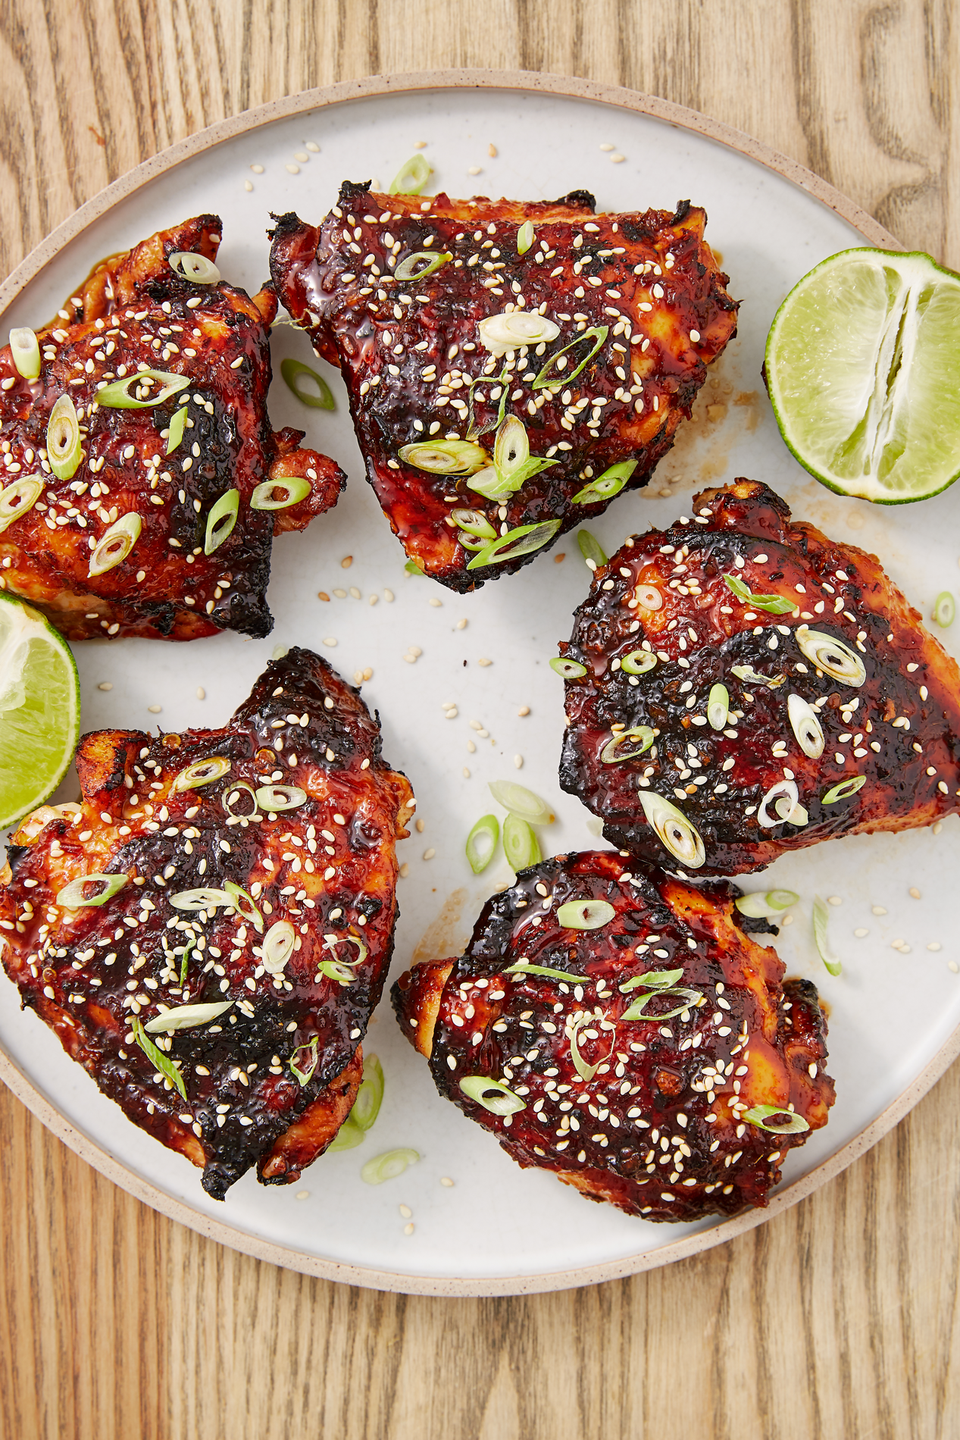 """<p>You'll lose your mind over that sticky glaze. </p><p>Get the recipe from <a href=""""https://www.delish.com/cooking/recipe-ideas/a28438728/air-fryer-chicken-thighs-recipe/"""" rel=""""nofollow noopener"""" target=""""_blank"""" data-ylk=""""slk:Delish"""" class=""""link rapid-noclick-resp"""">Delish</a>. </p>"""